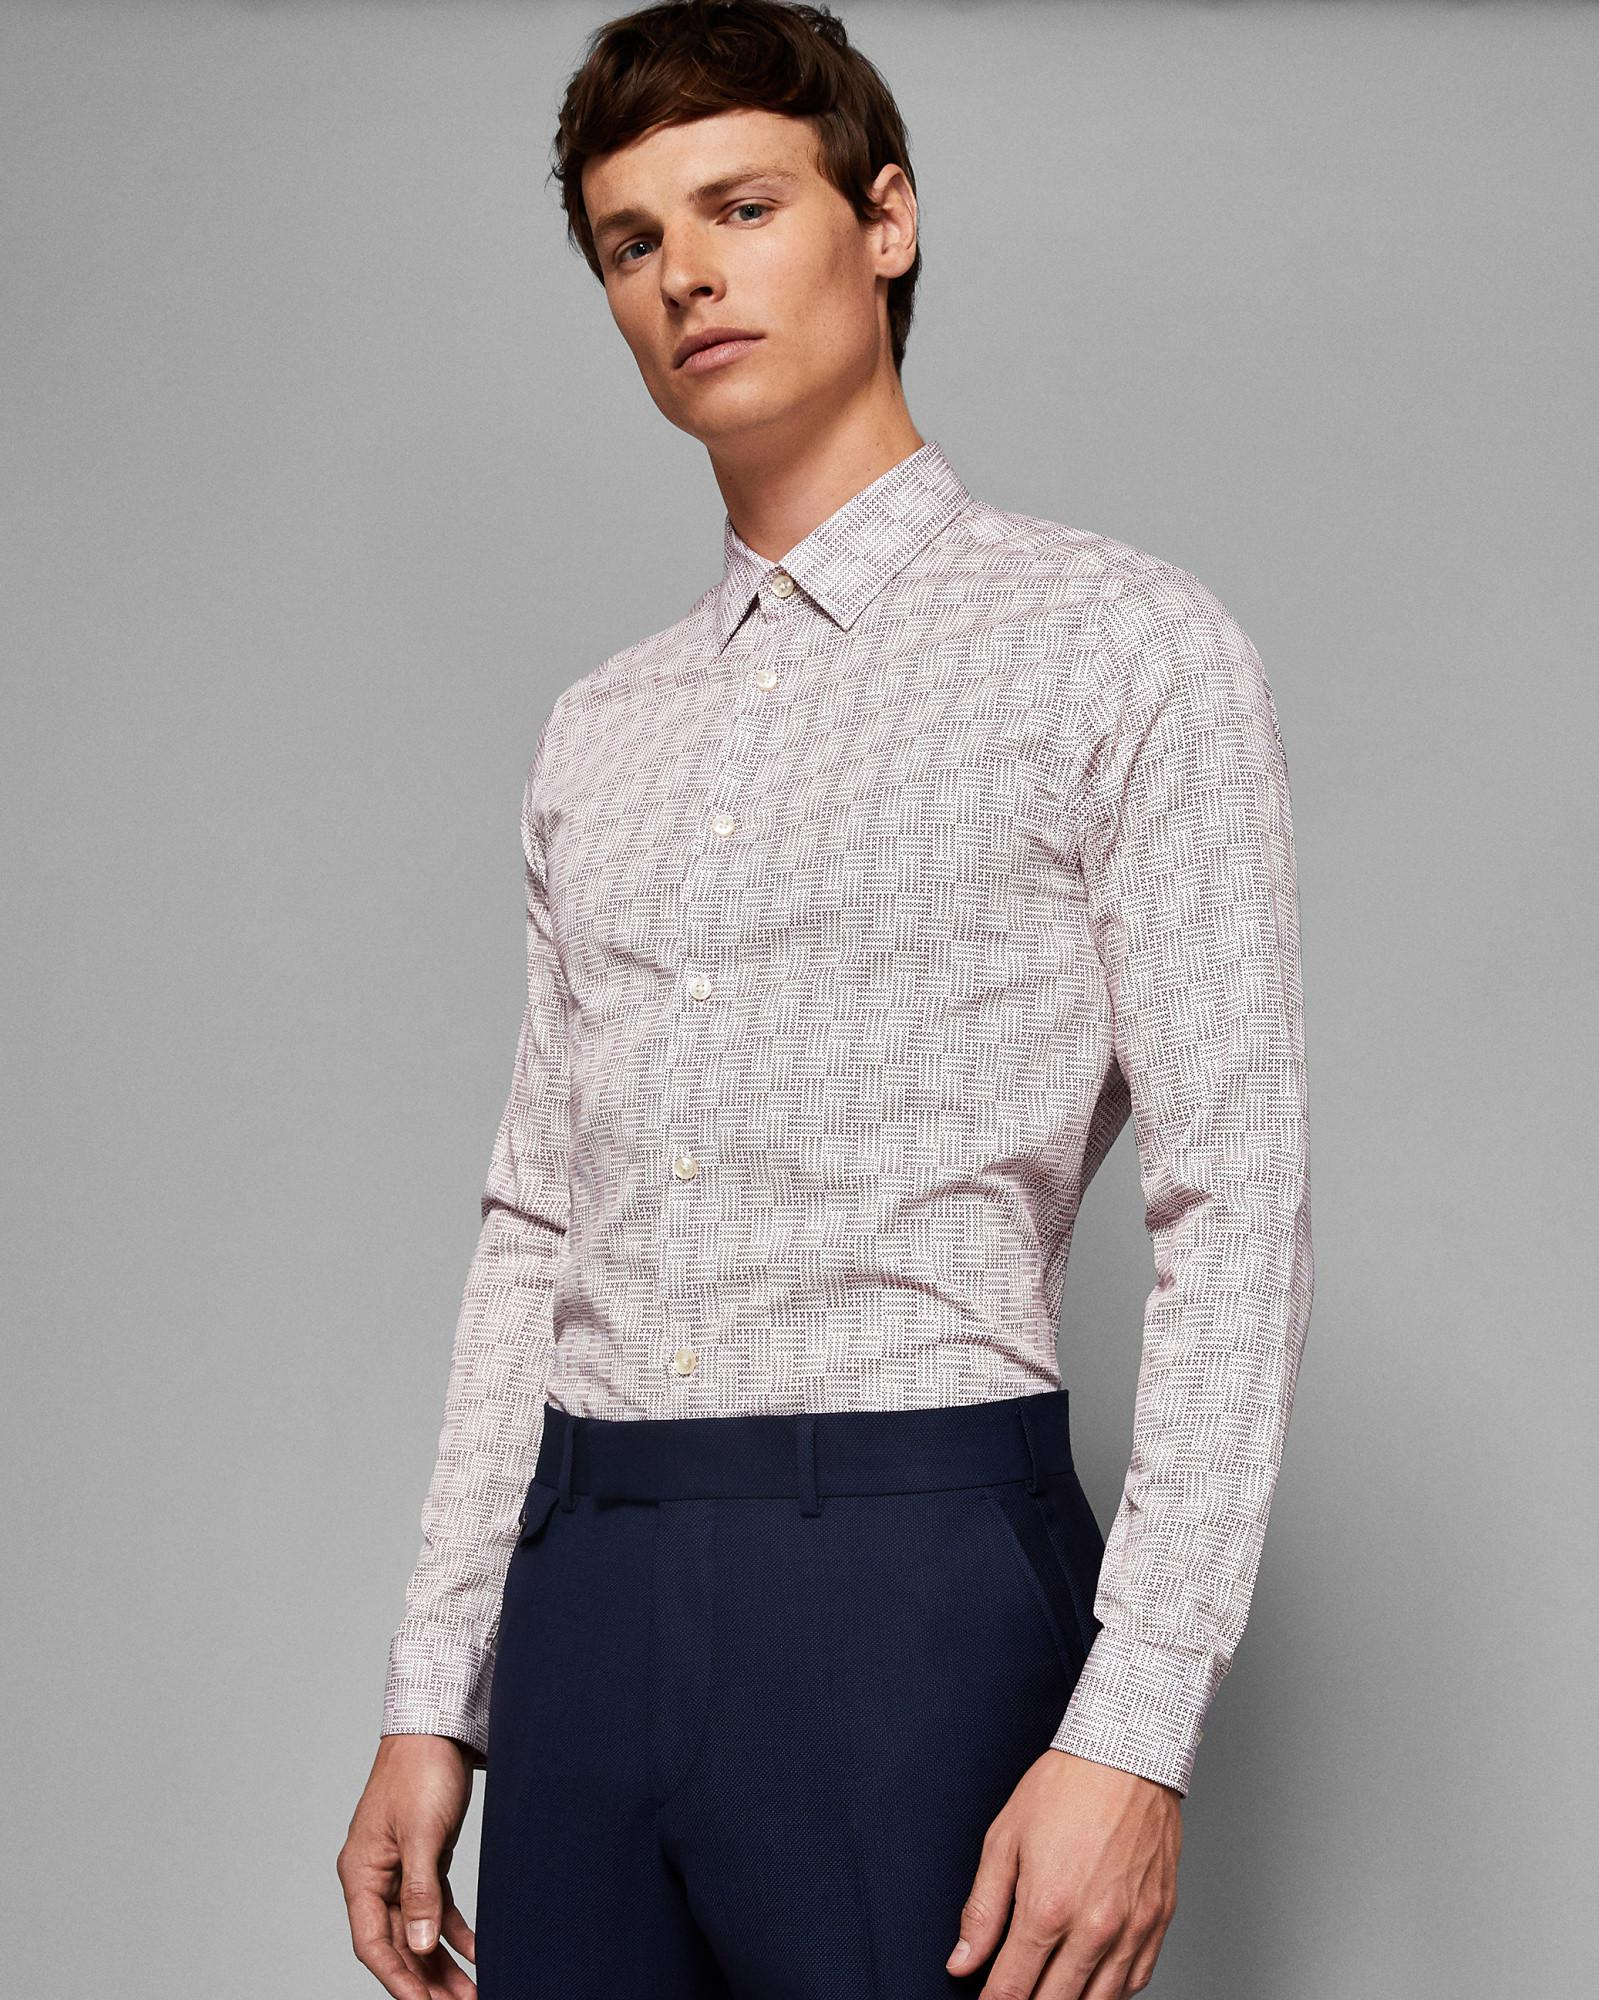 Tonal Geo Print Cotton Shirt Ted Baker Footlocker Pictures Sale Online 6VJpv